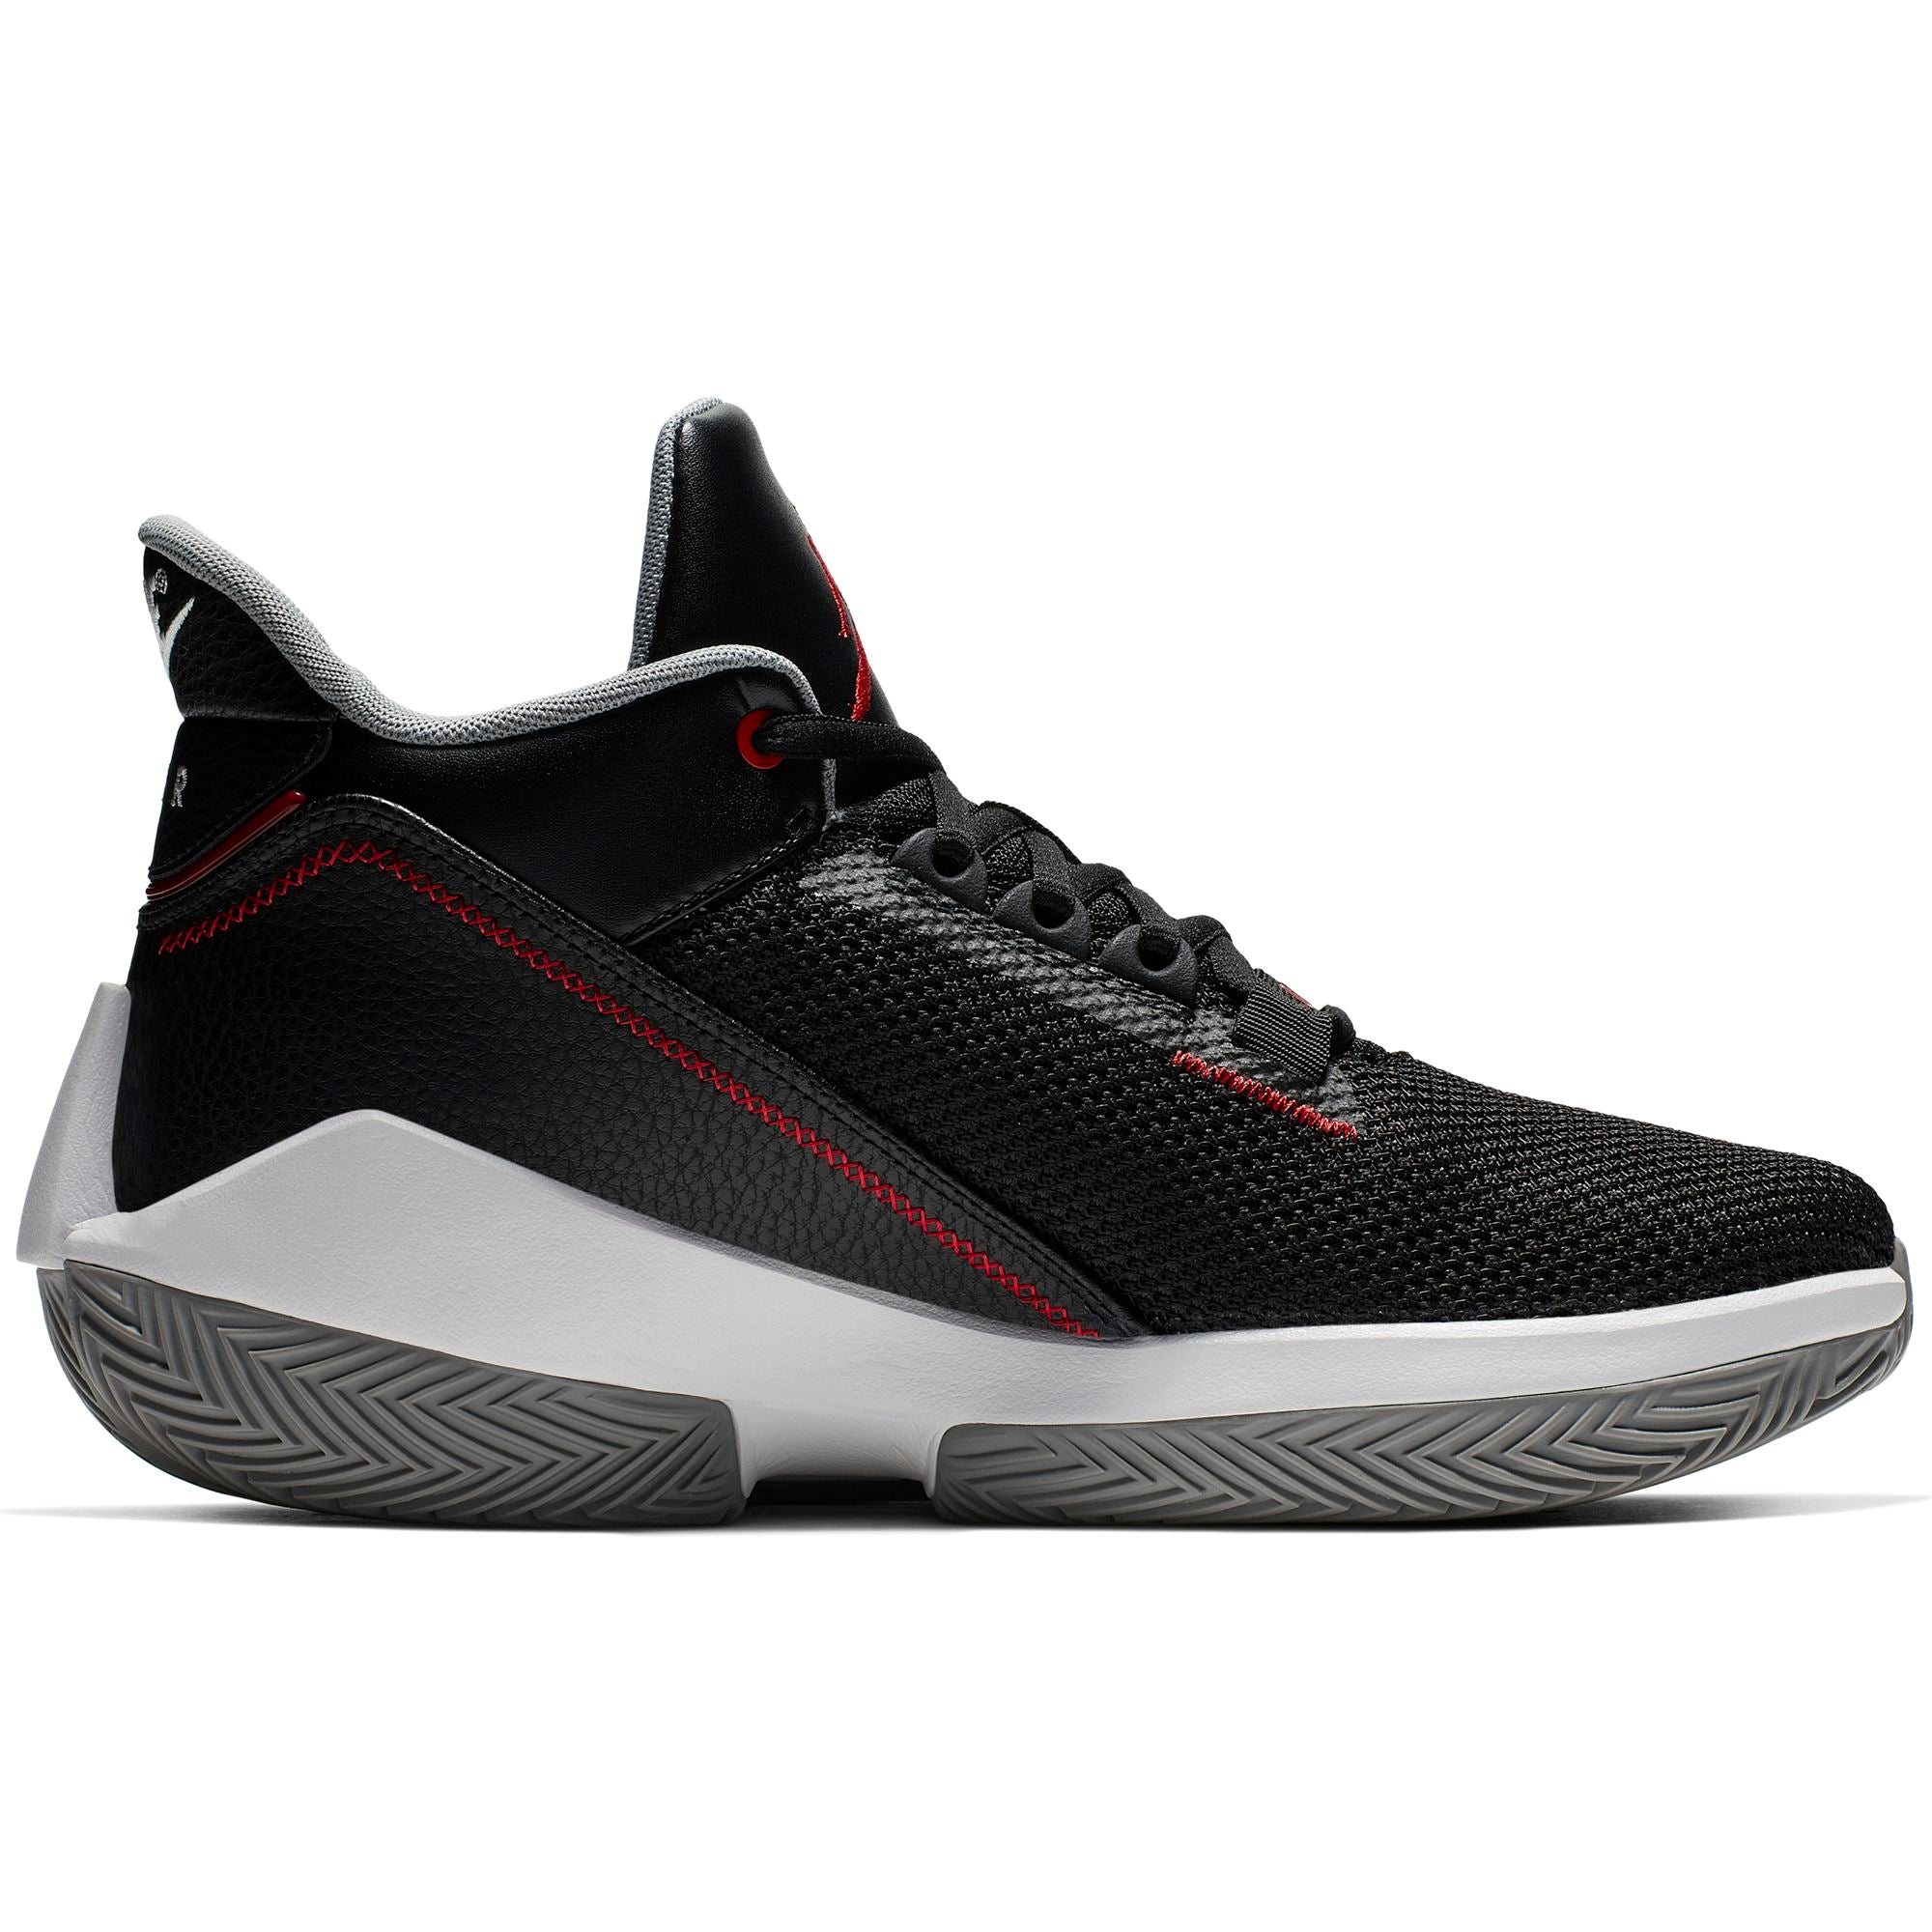 Nike Jordan 2x3 Basketball Boot/Shoe - Black/Gym Red/Particle Grey/White